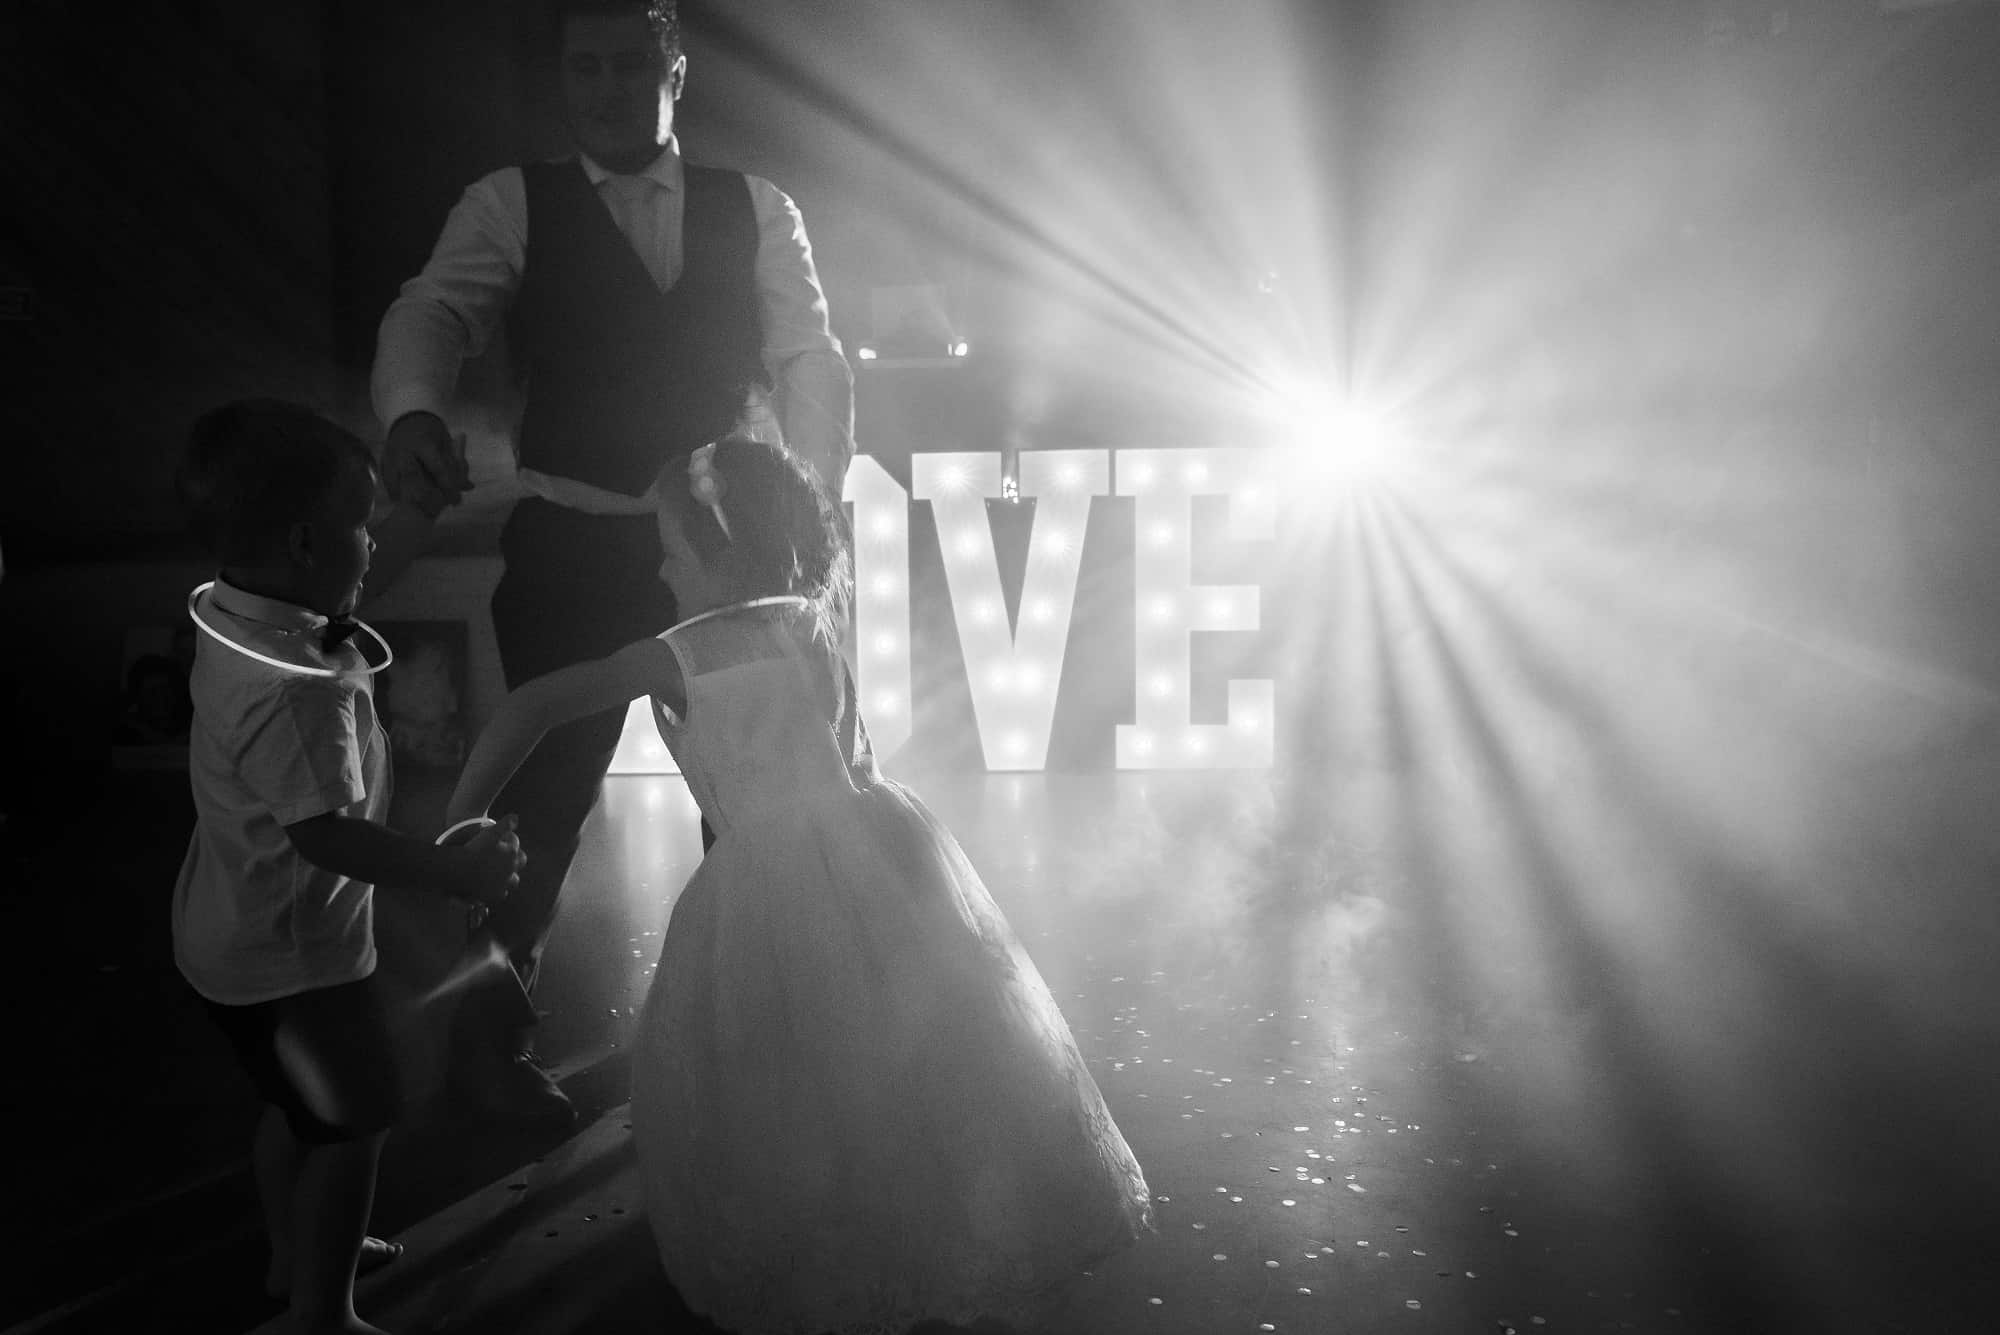 Black and white photo of Groom dancing with children at the reception of their wedding. Lights in the background and a love sign in the background